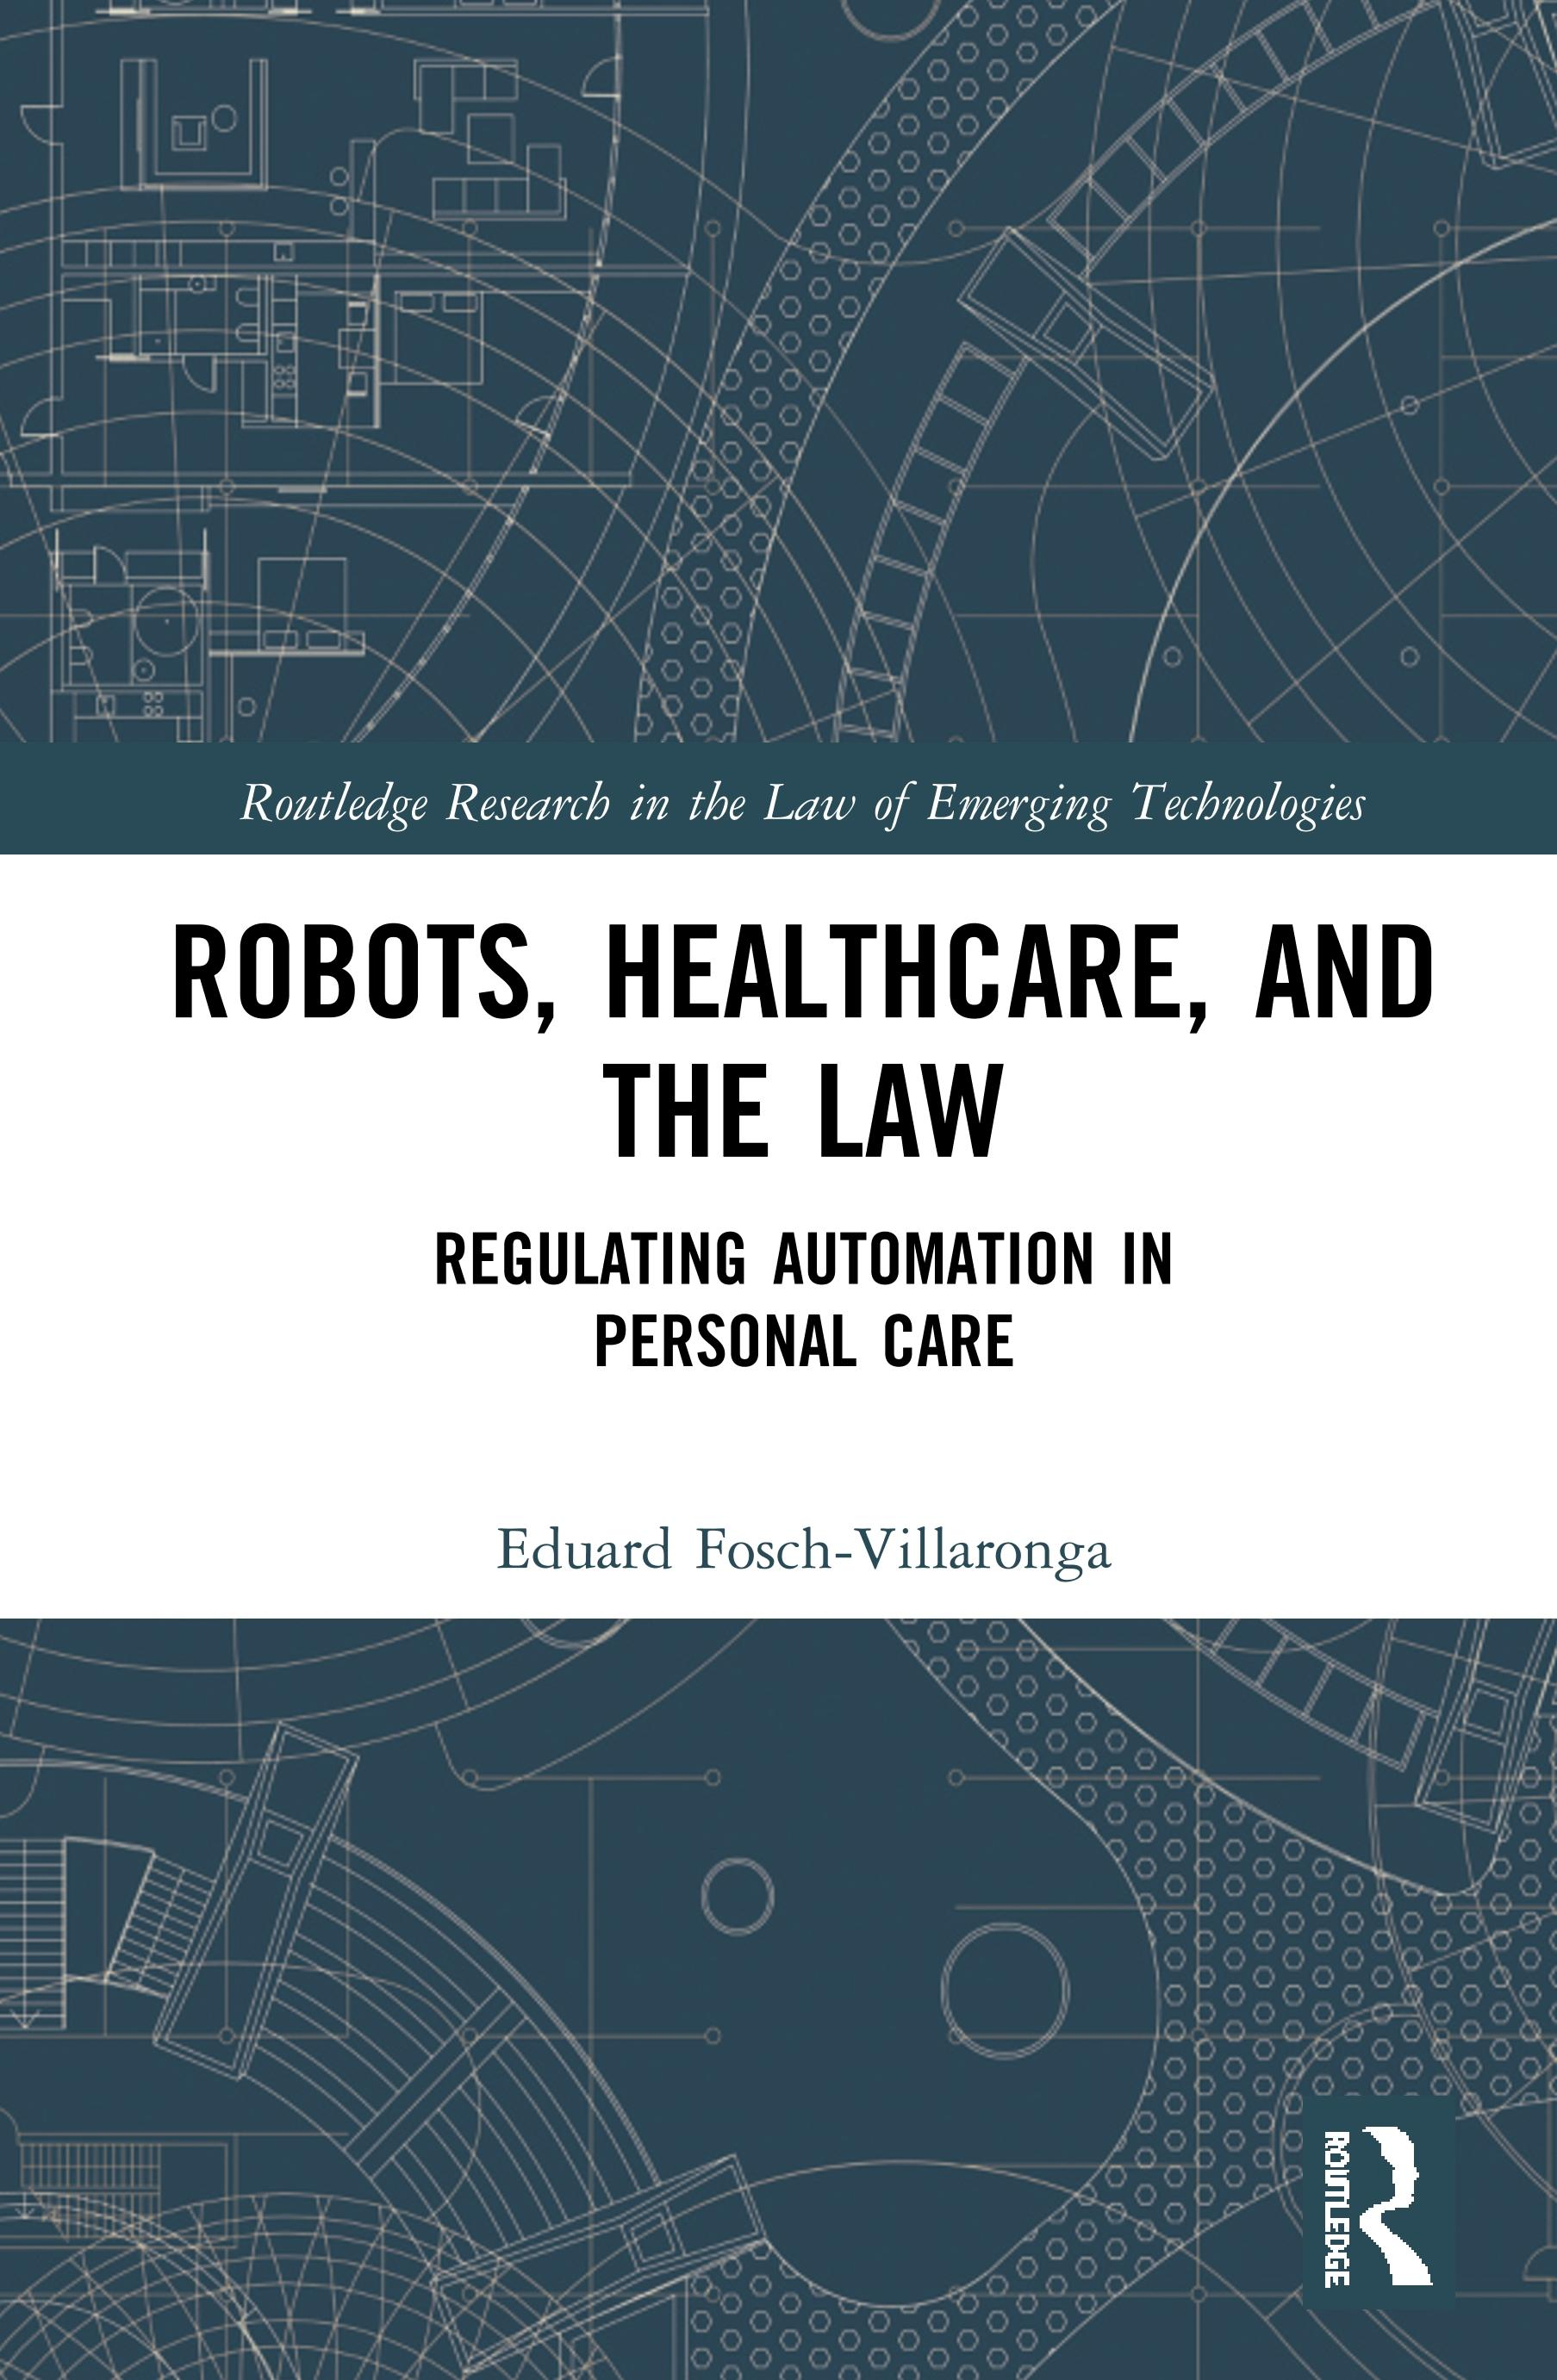 healthcare, robots and the law